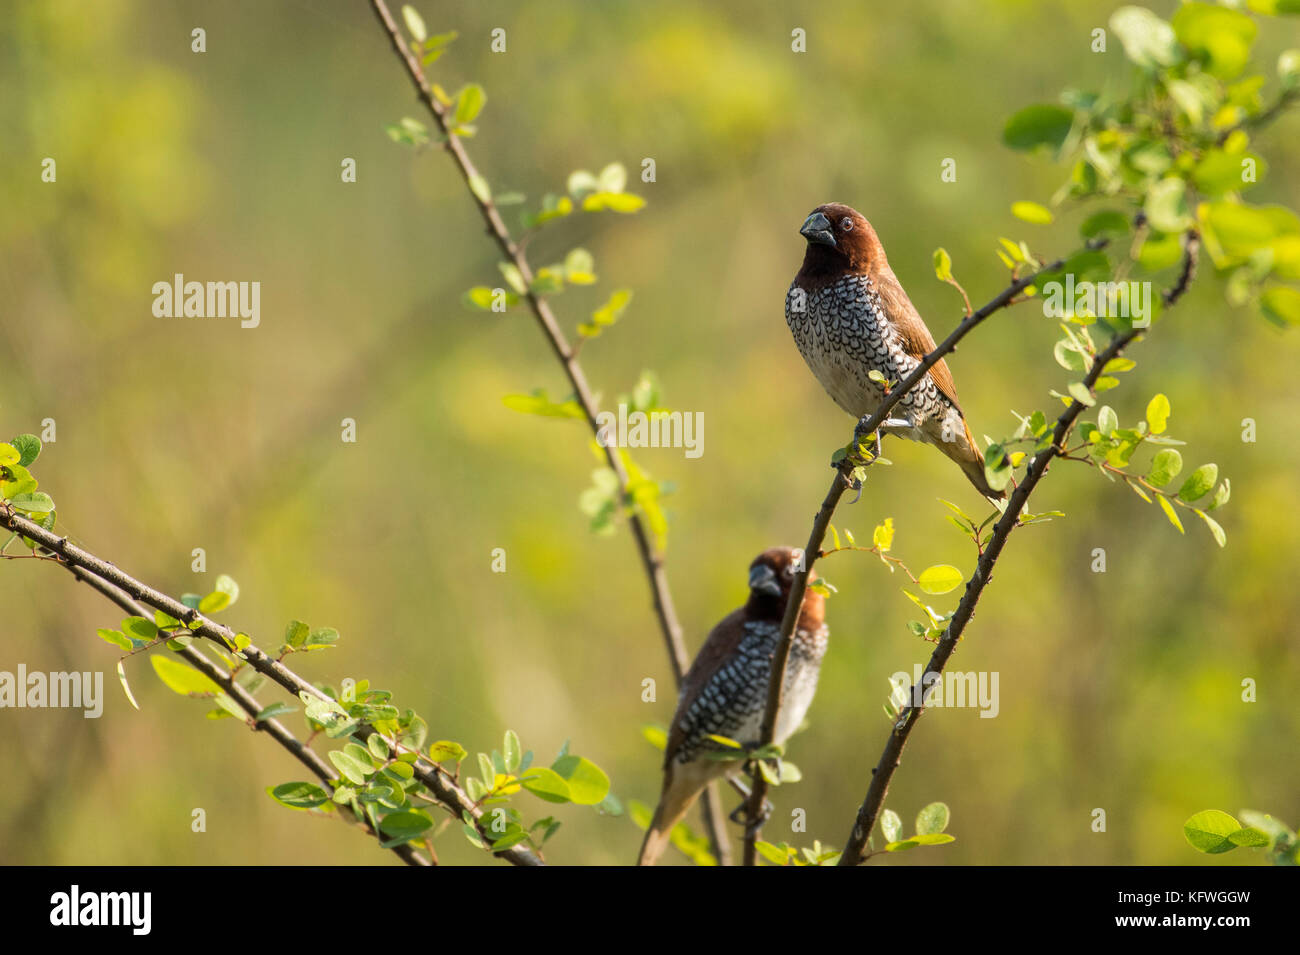 Pair of Spotted Munia Sitting on Branch - Stock Image